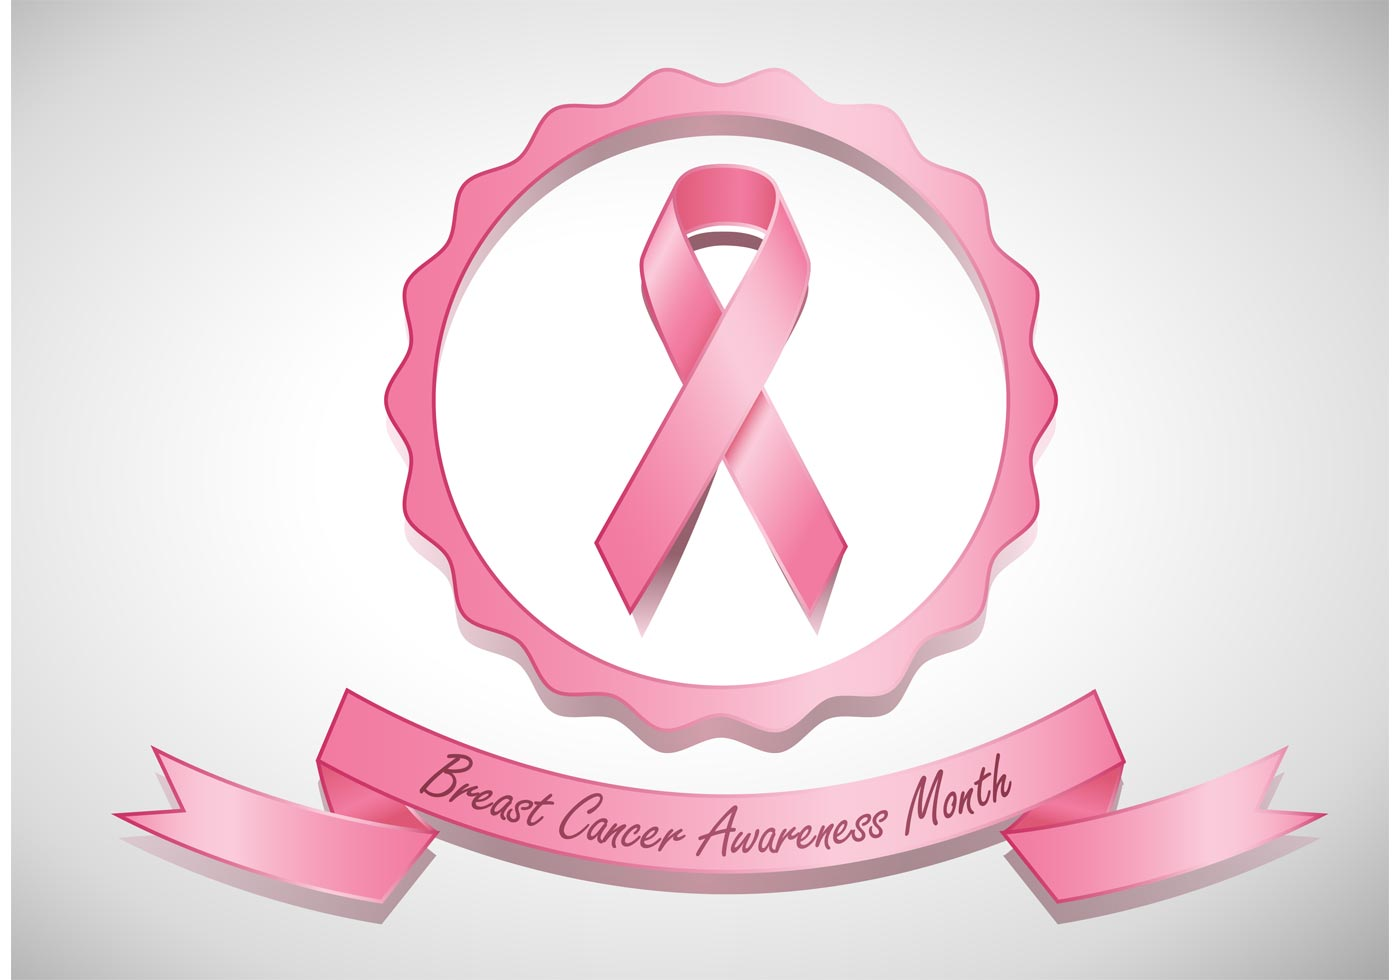 breast and ovarian cancer Why do brca1 mutations cause predominantly breast and ovarian cancer date: july 18, 2017 source: university of texas health science center at san antonio.